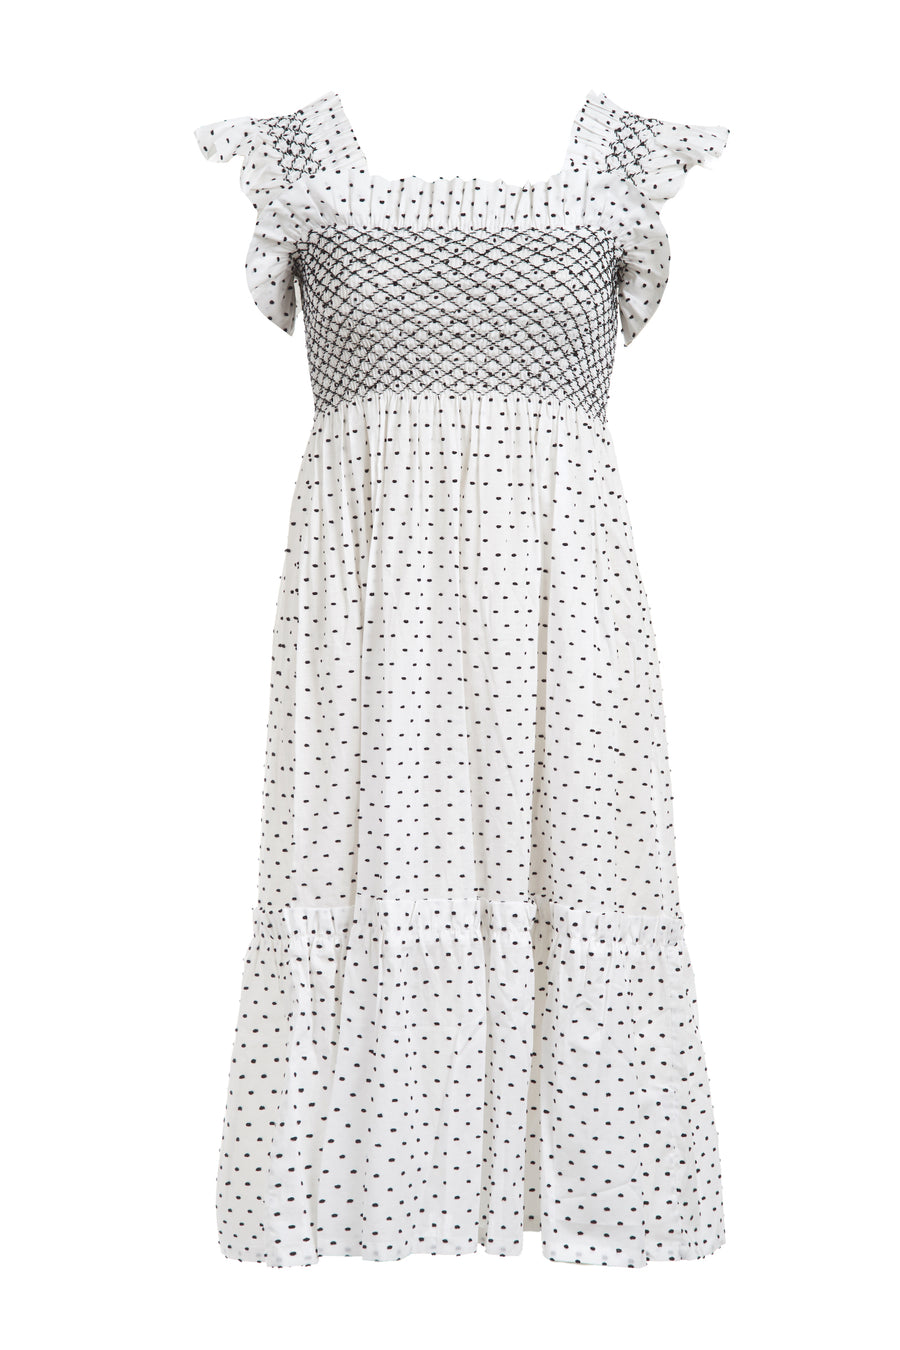 QUEENIE DRESS WHITE NAVY SPOT